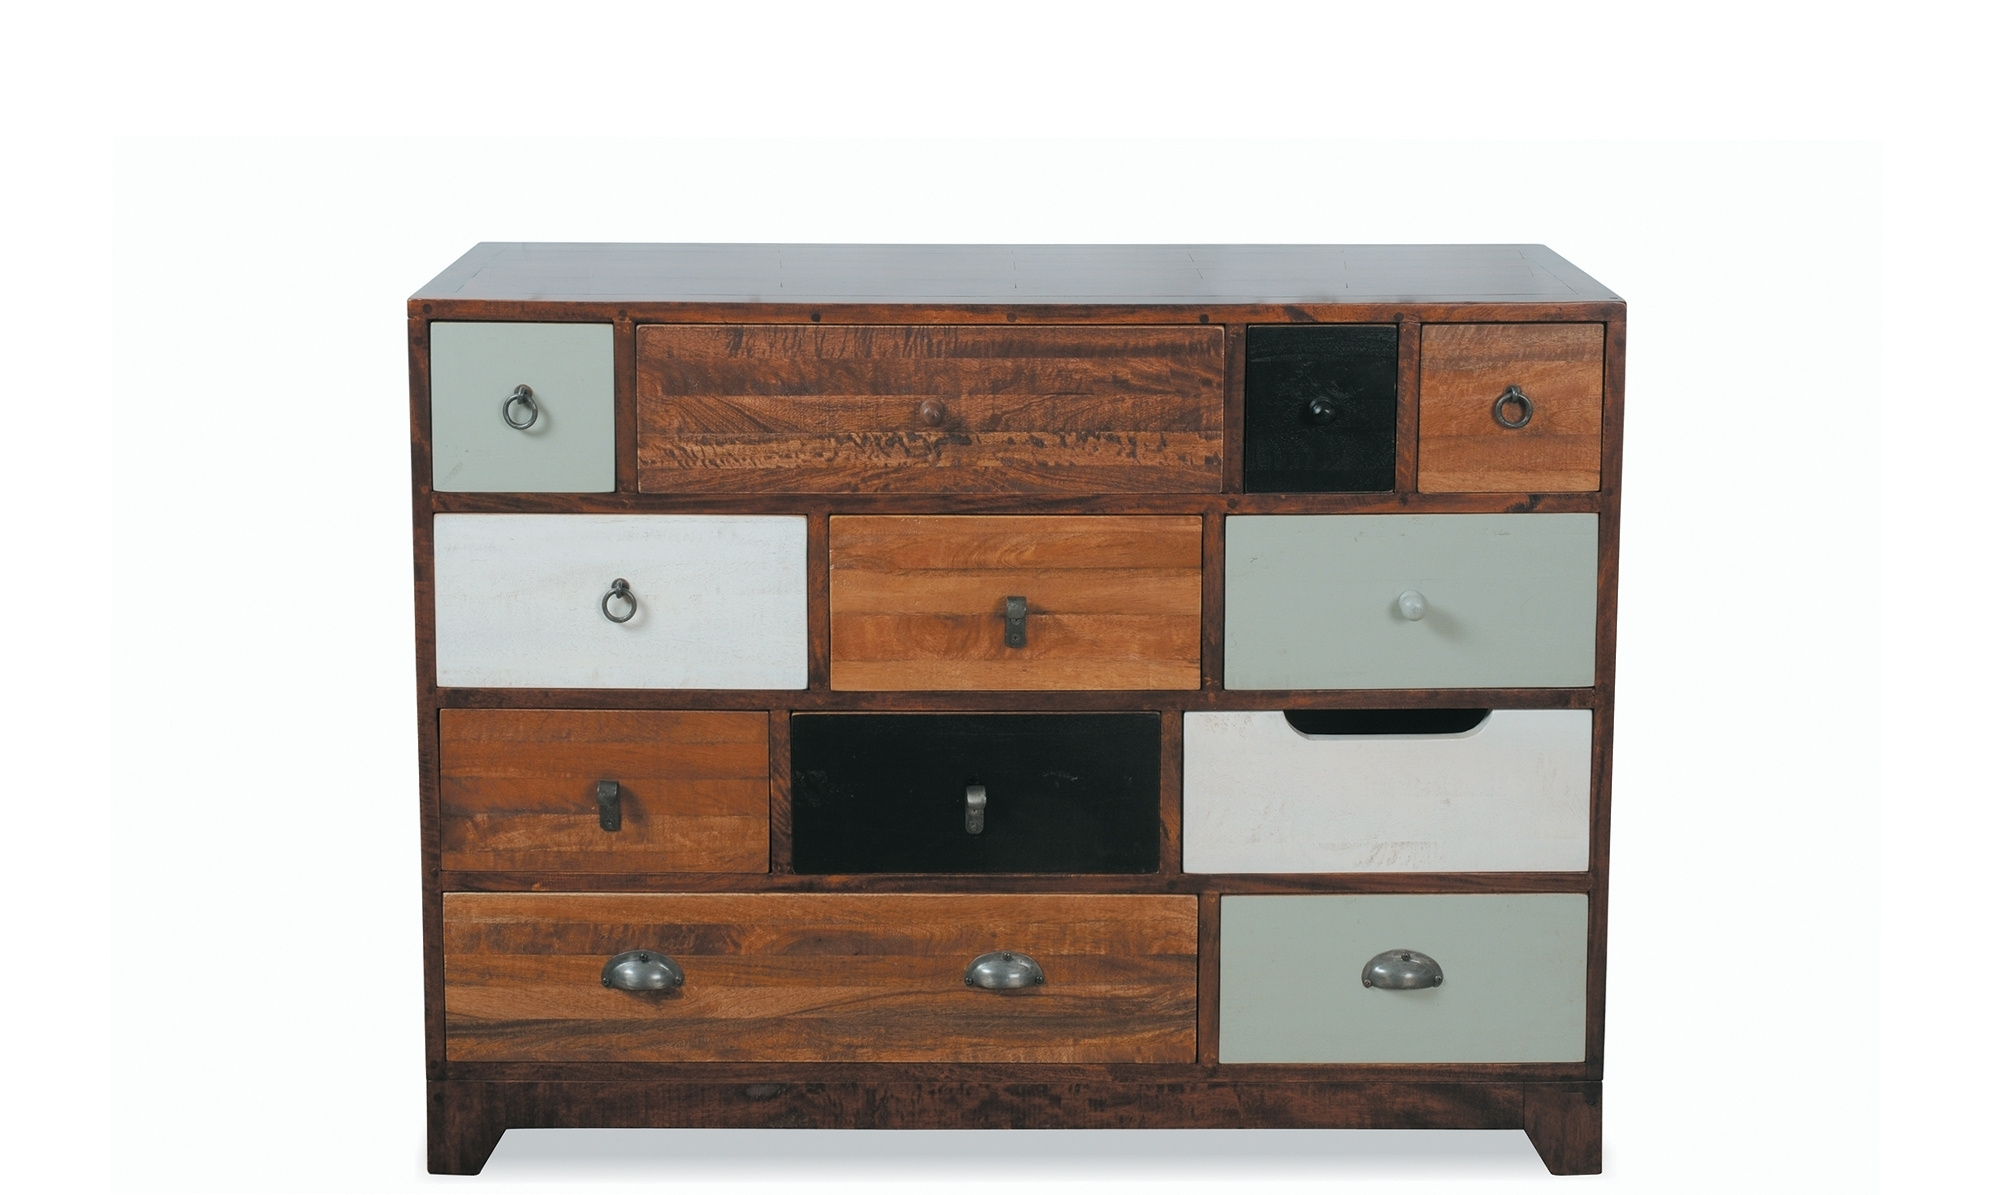 Sideboards - Modern, Oak & Pine Sideboards - Fishpools throughout Antique Walnut Finish 2-Door/4-Drawer Sideboards (Image 26 of 30)